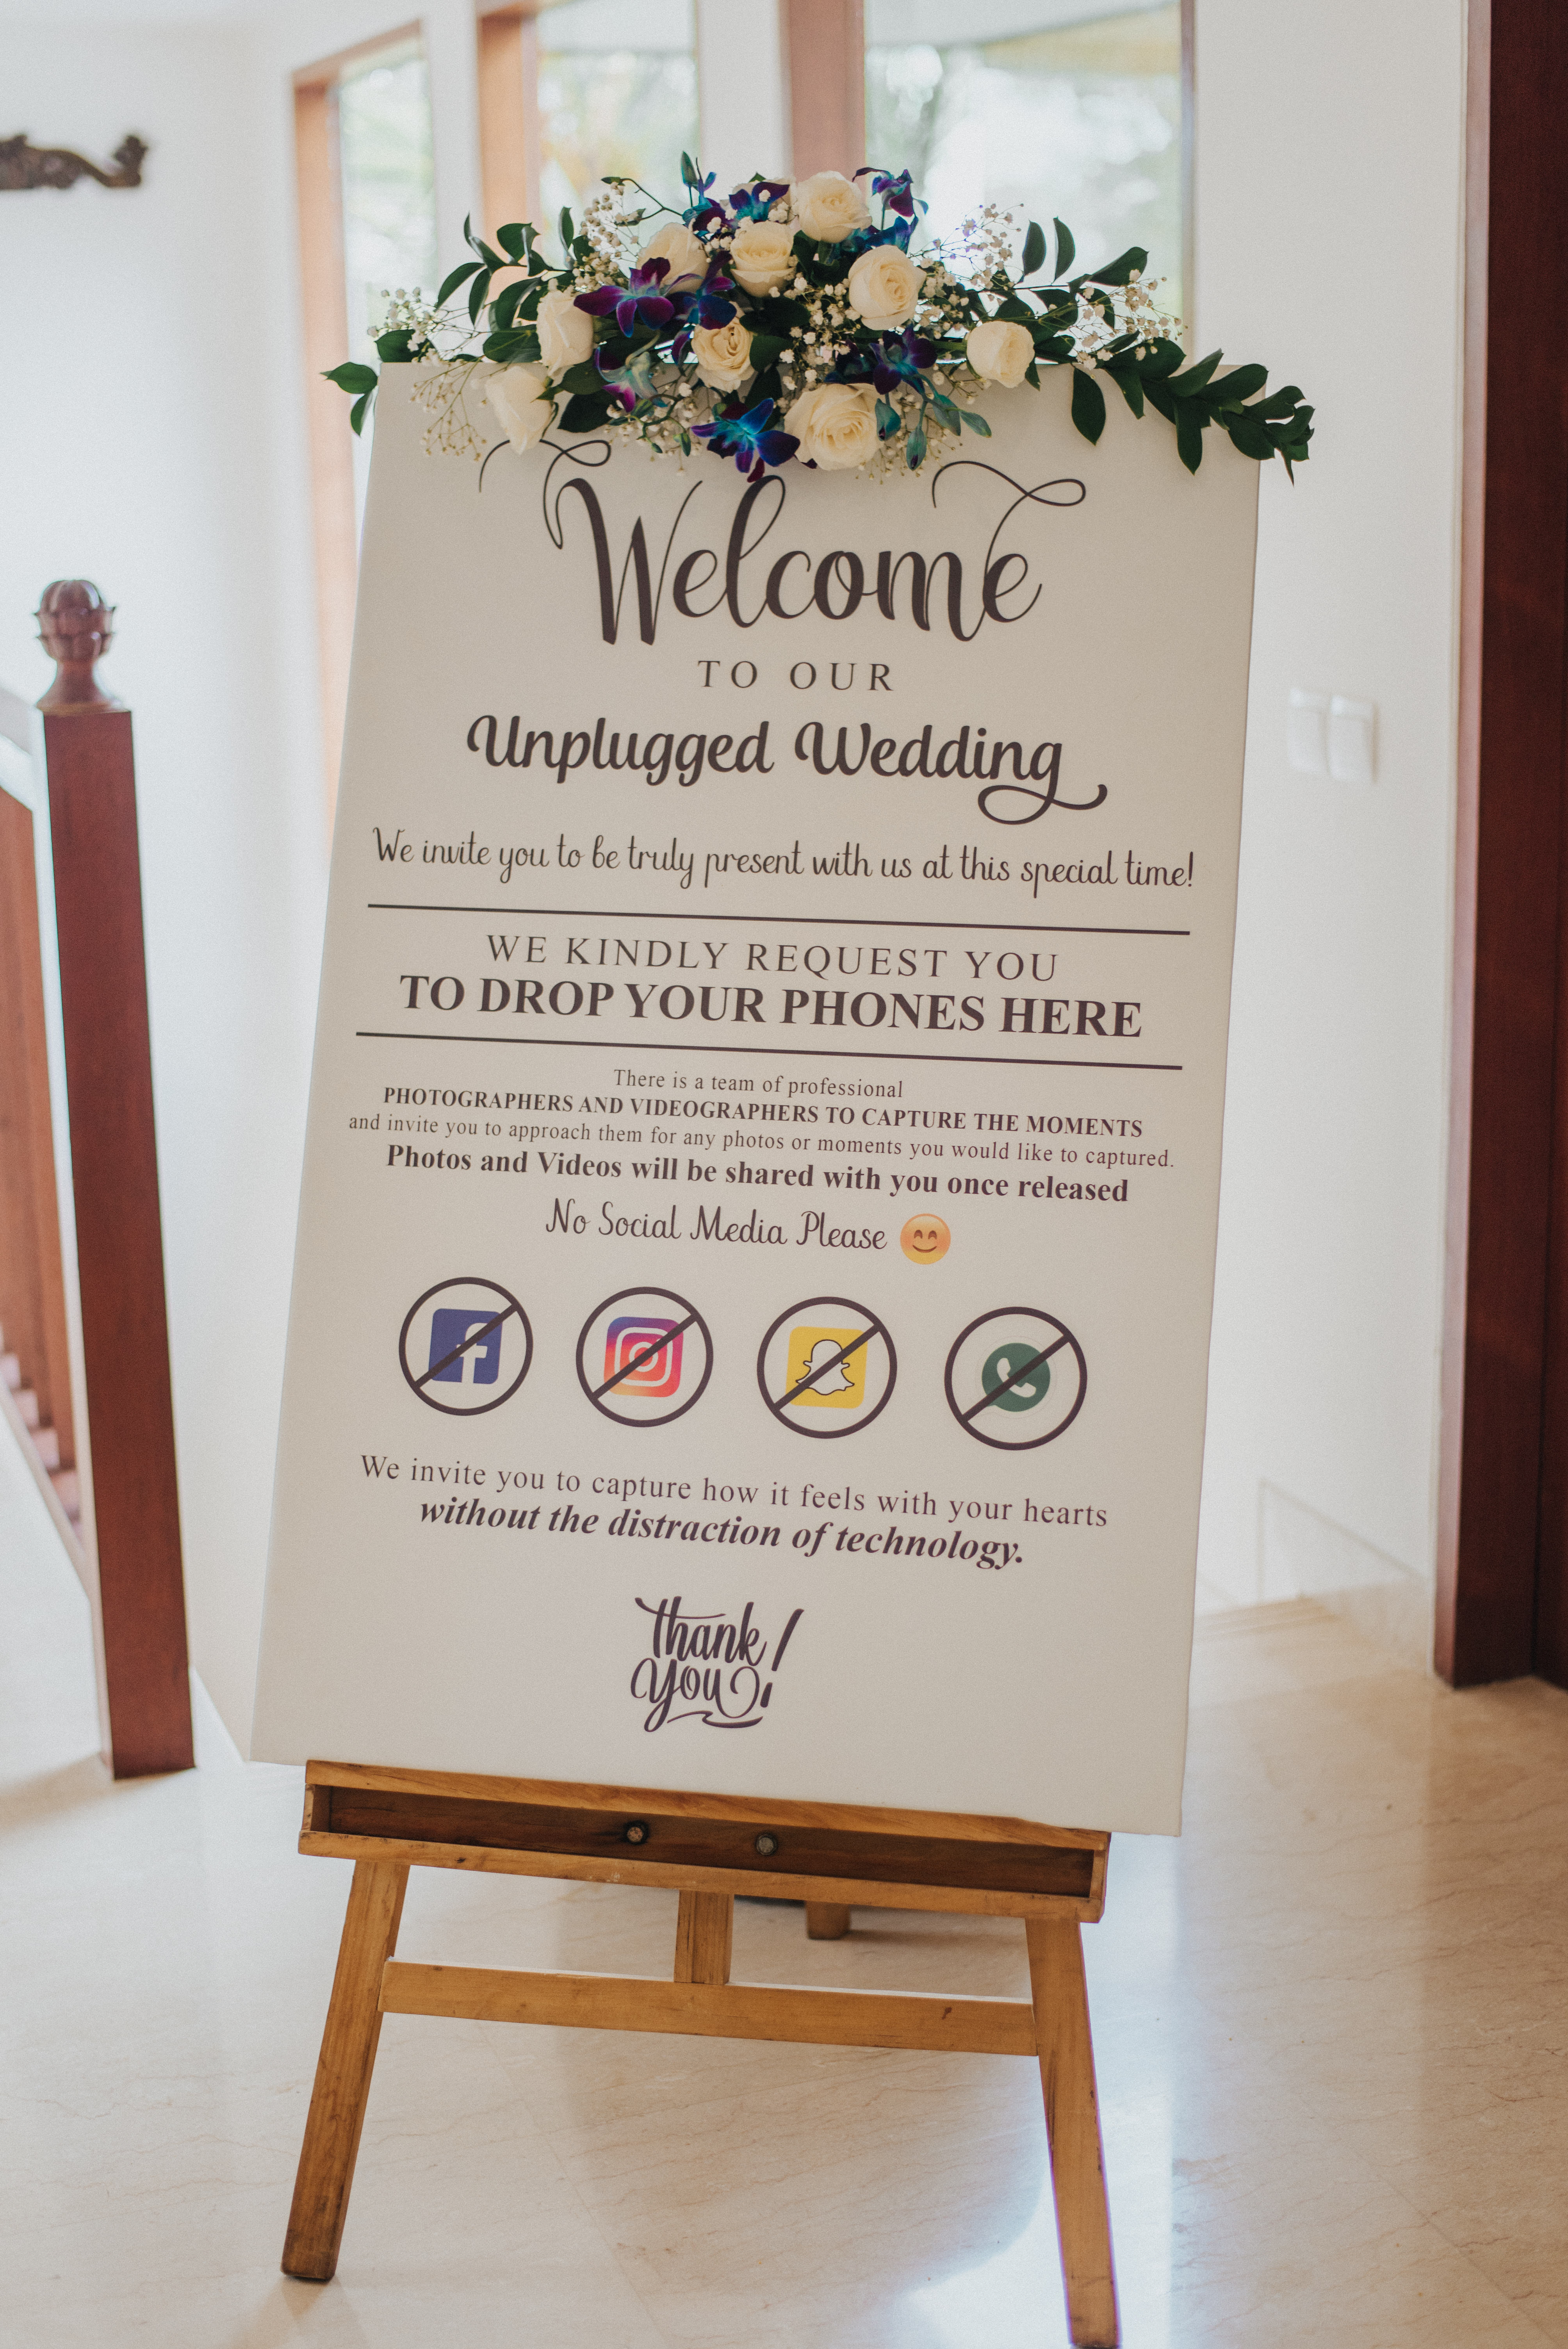 Why is Unplugged Ceremony Important?